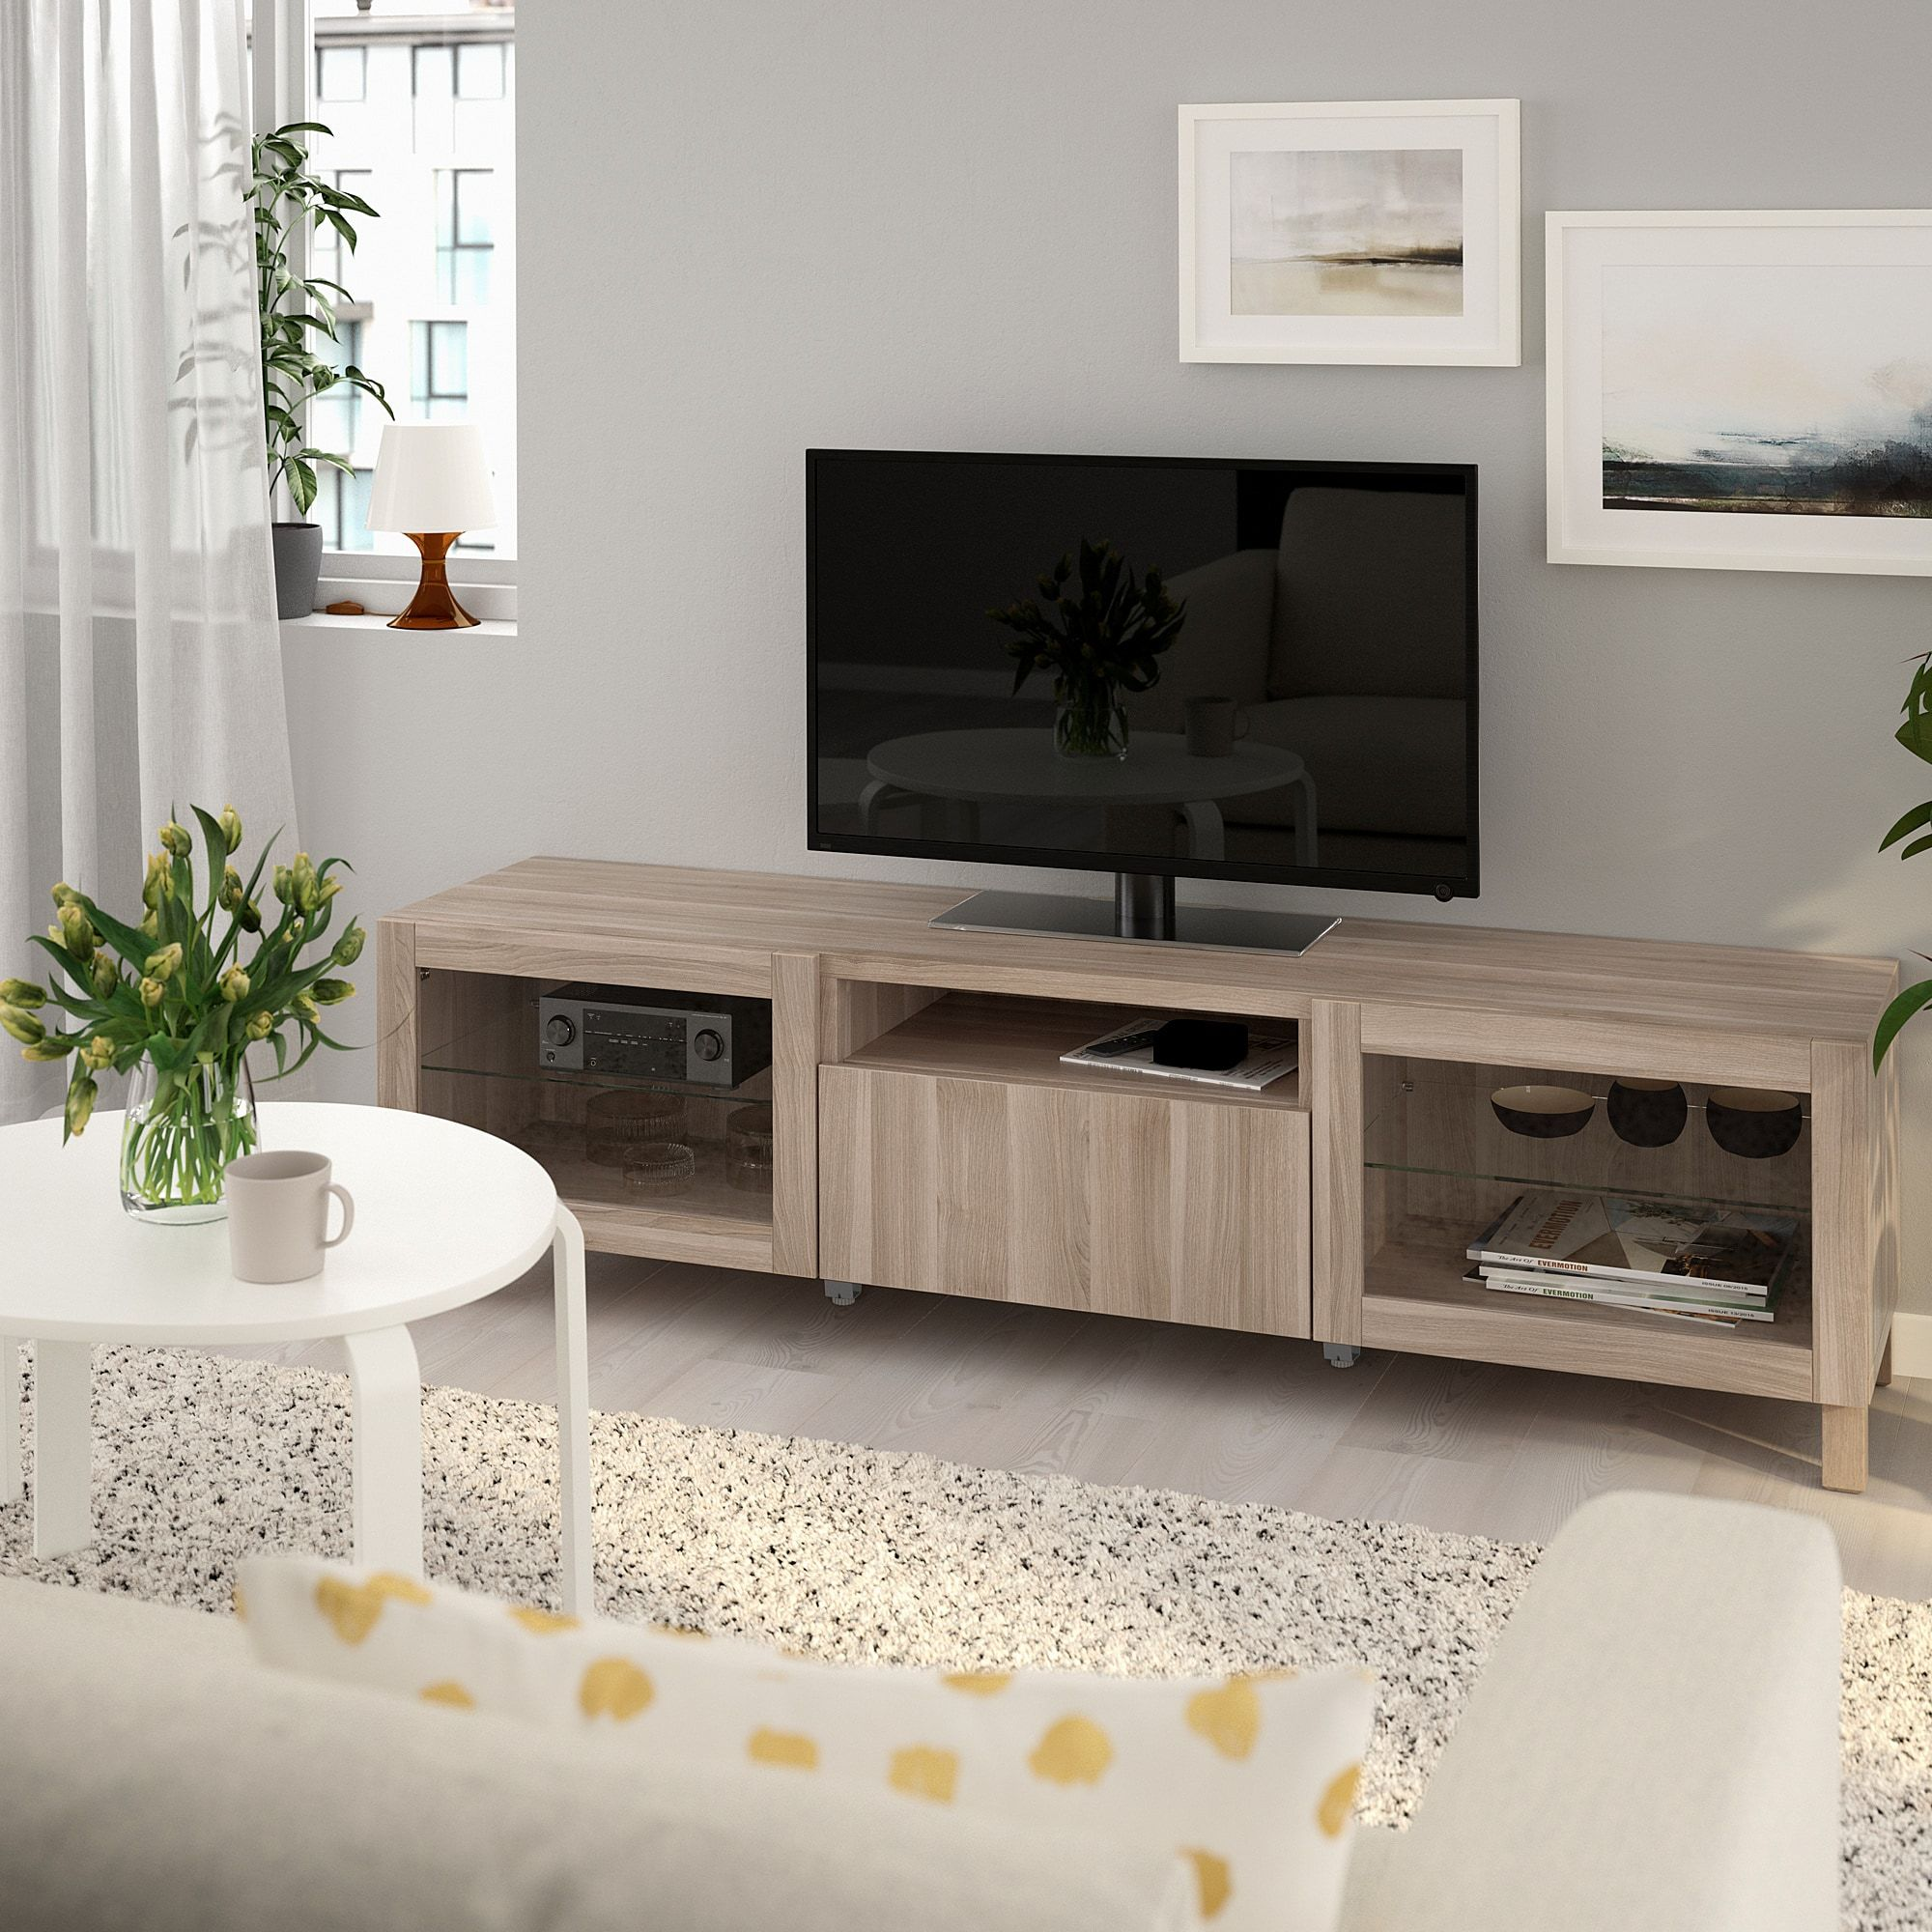 Us Furniture And Home Furnishings Tv Unit Tv Bench Glass Tv Unit